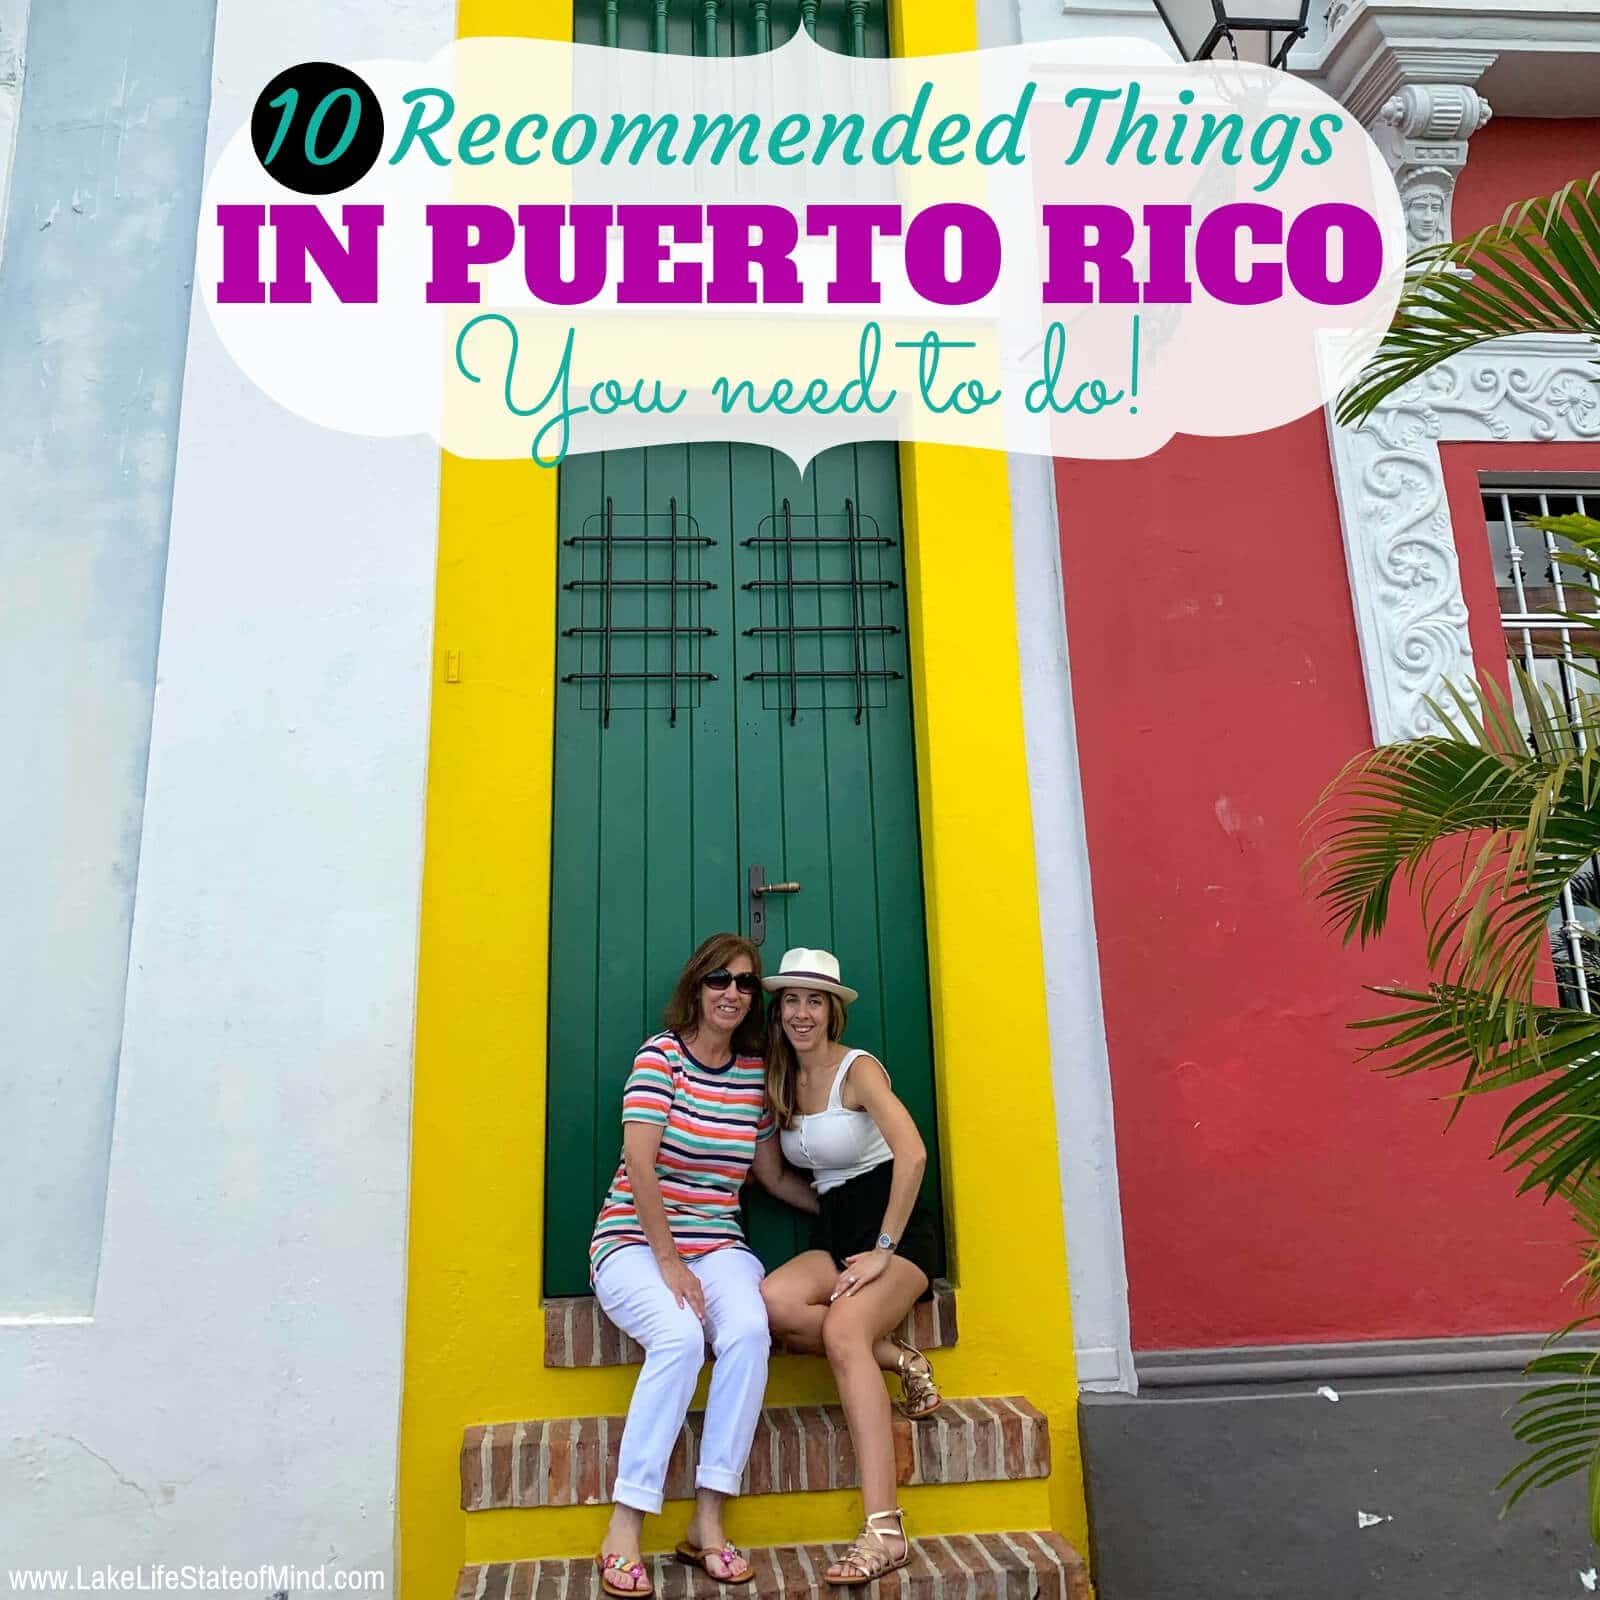 10 Recommended Activities to do When in Puerto Rico